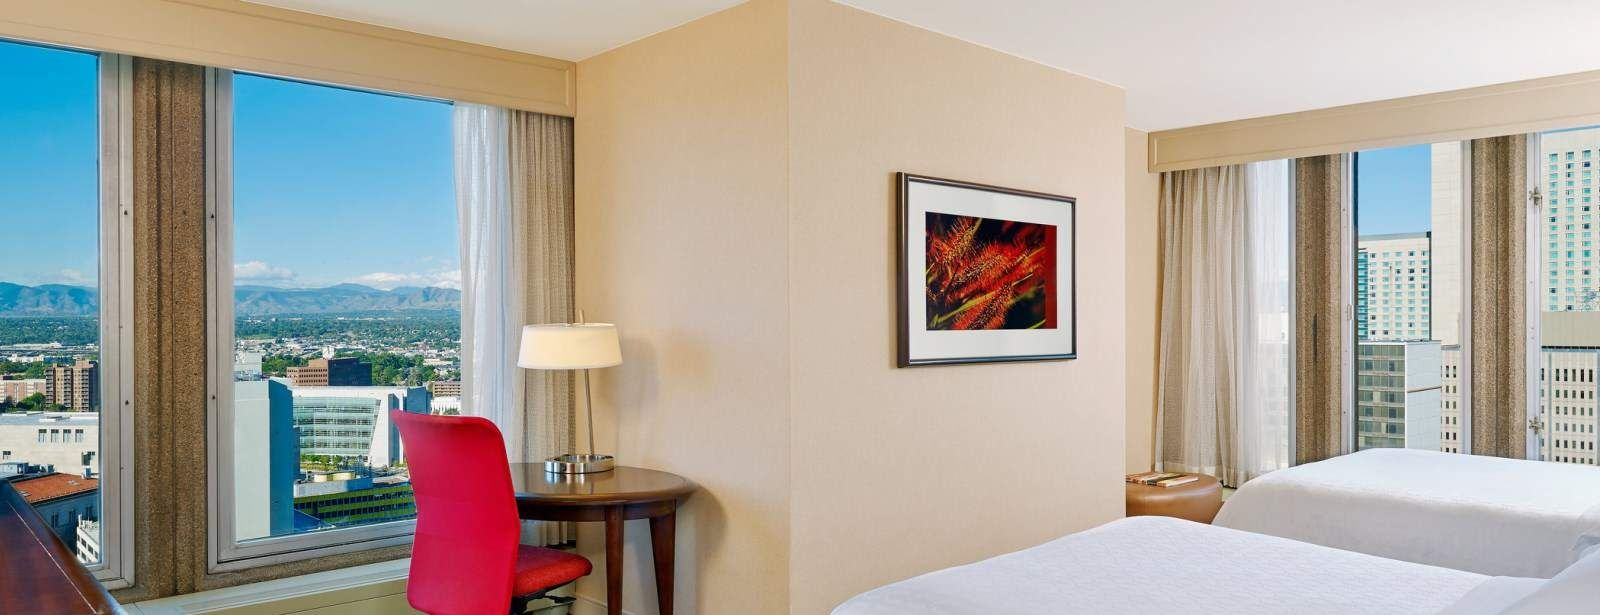 Hotel Accommodations in Denver | Sheraton Denver Downtown Hotel